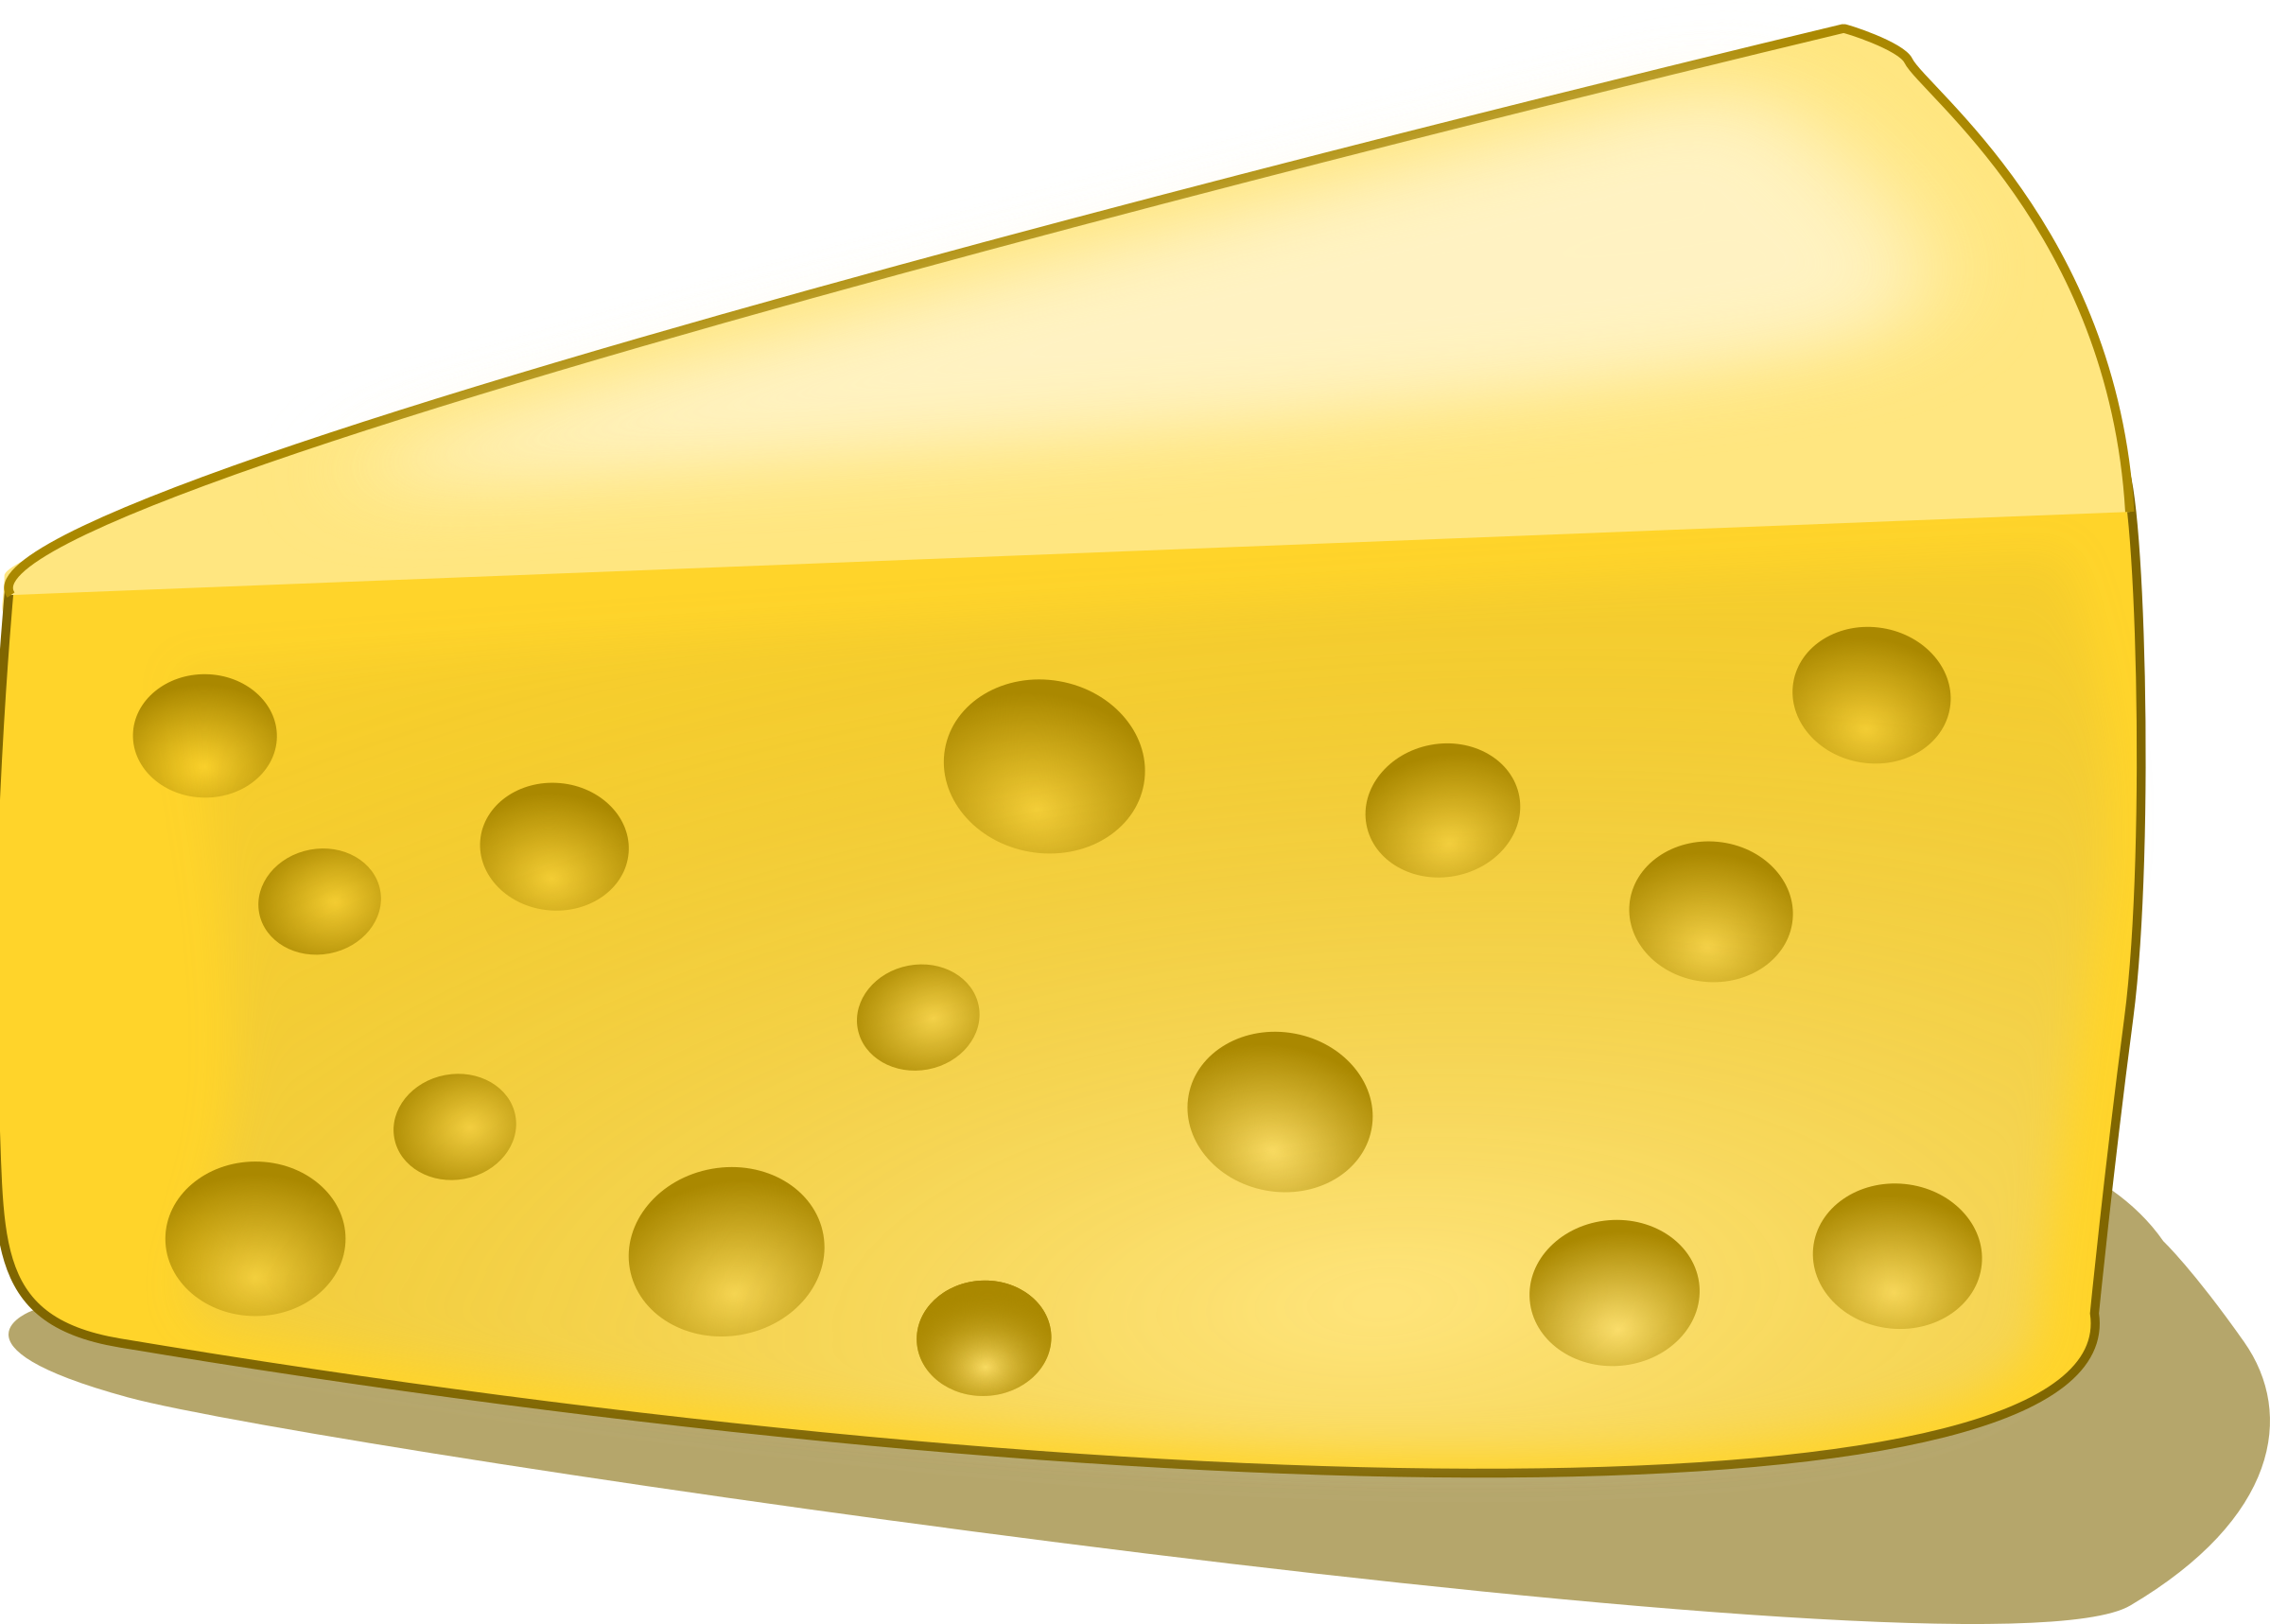 piece of cheese by Chrisdesign